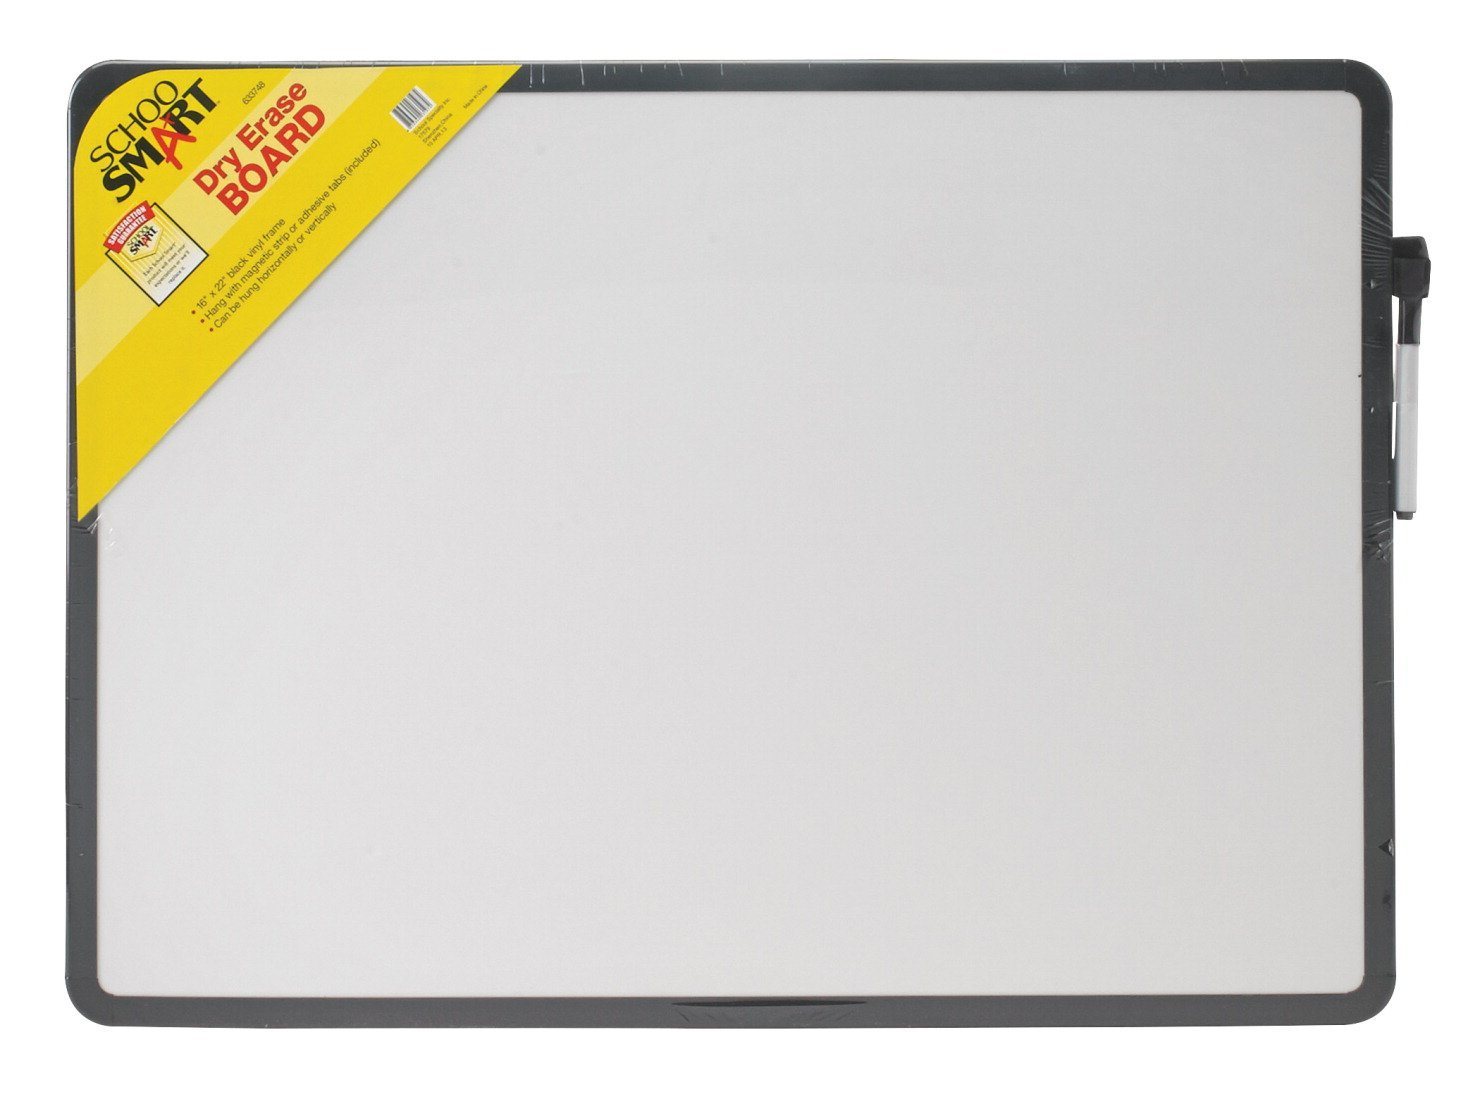 School Smart 633748 Dry Erase Boards - 16 x 22 inches - Black Frame